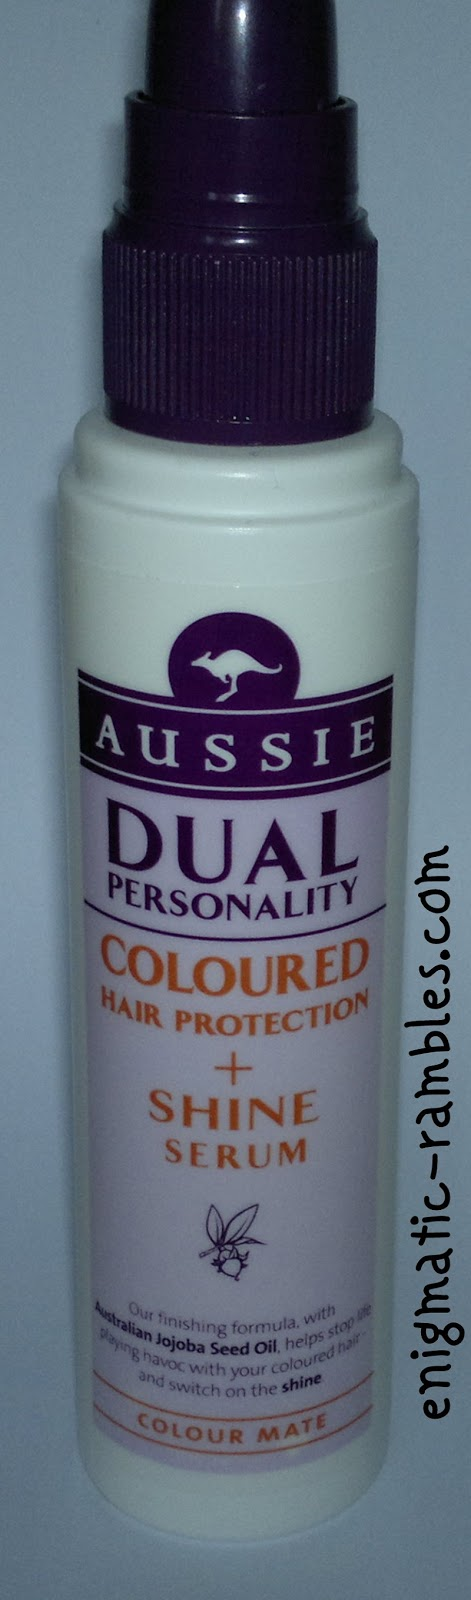 Review-Aussie-Dual-Personality-Style-Coloured-Protection-and-Shine-Serum